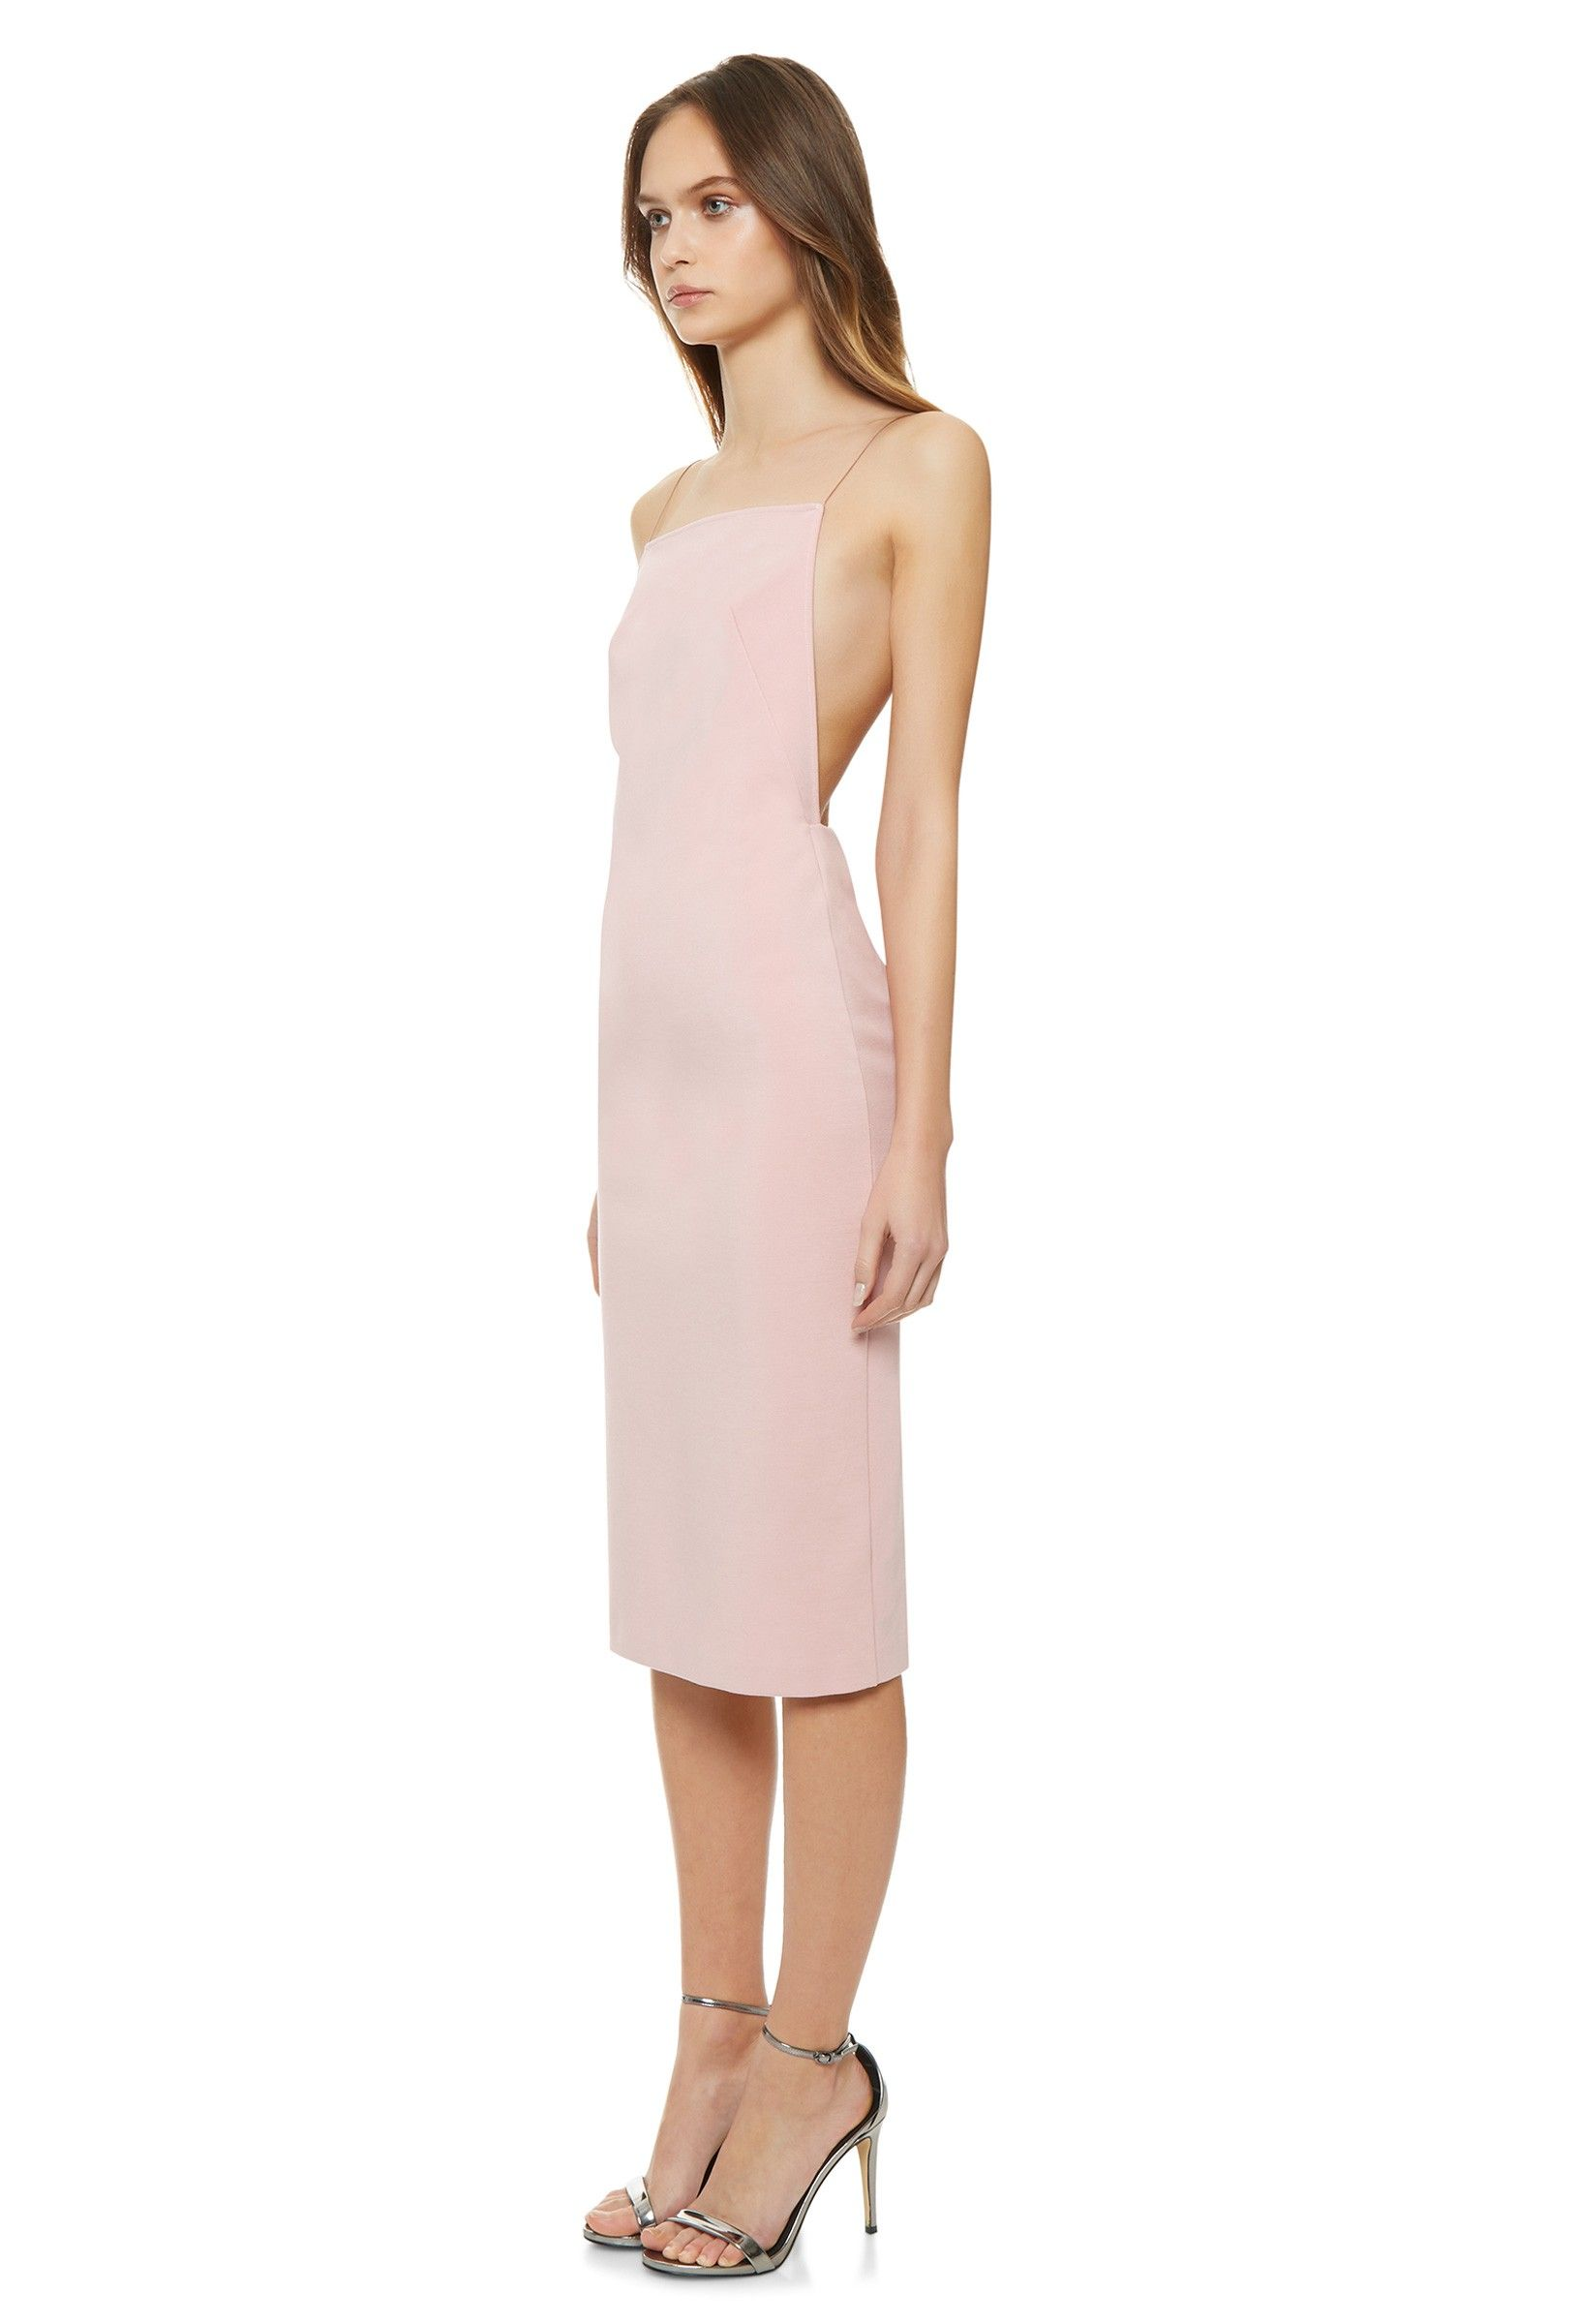 2a7def2a94db Image 1 of Cartney Backless Midi Dress with Shoestring Straps · Pale Pink ·  AQ AQ